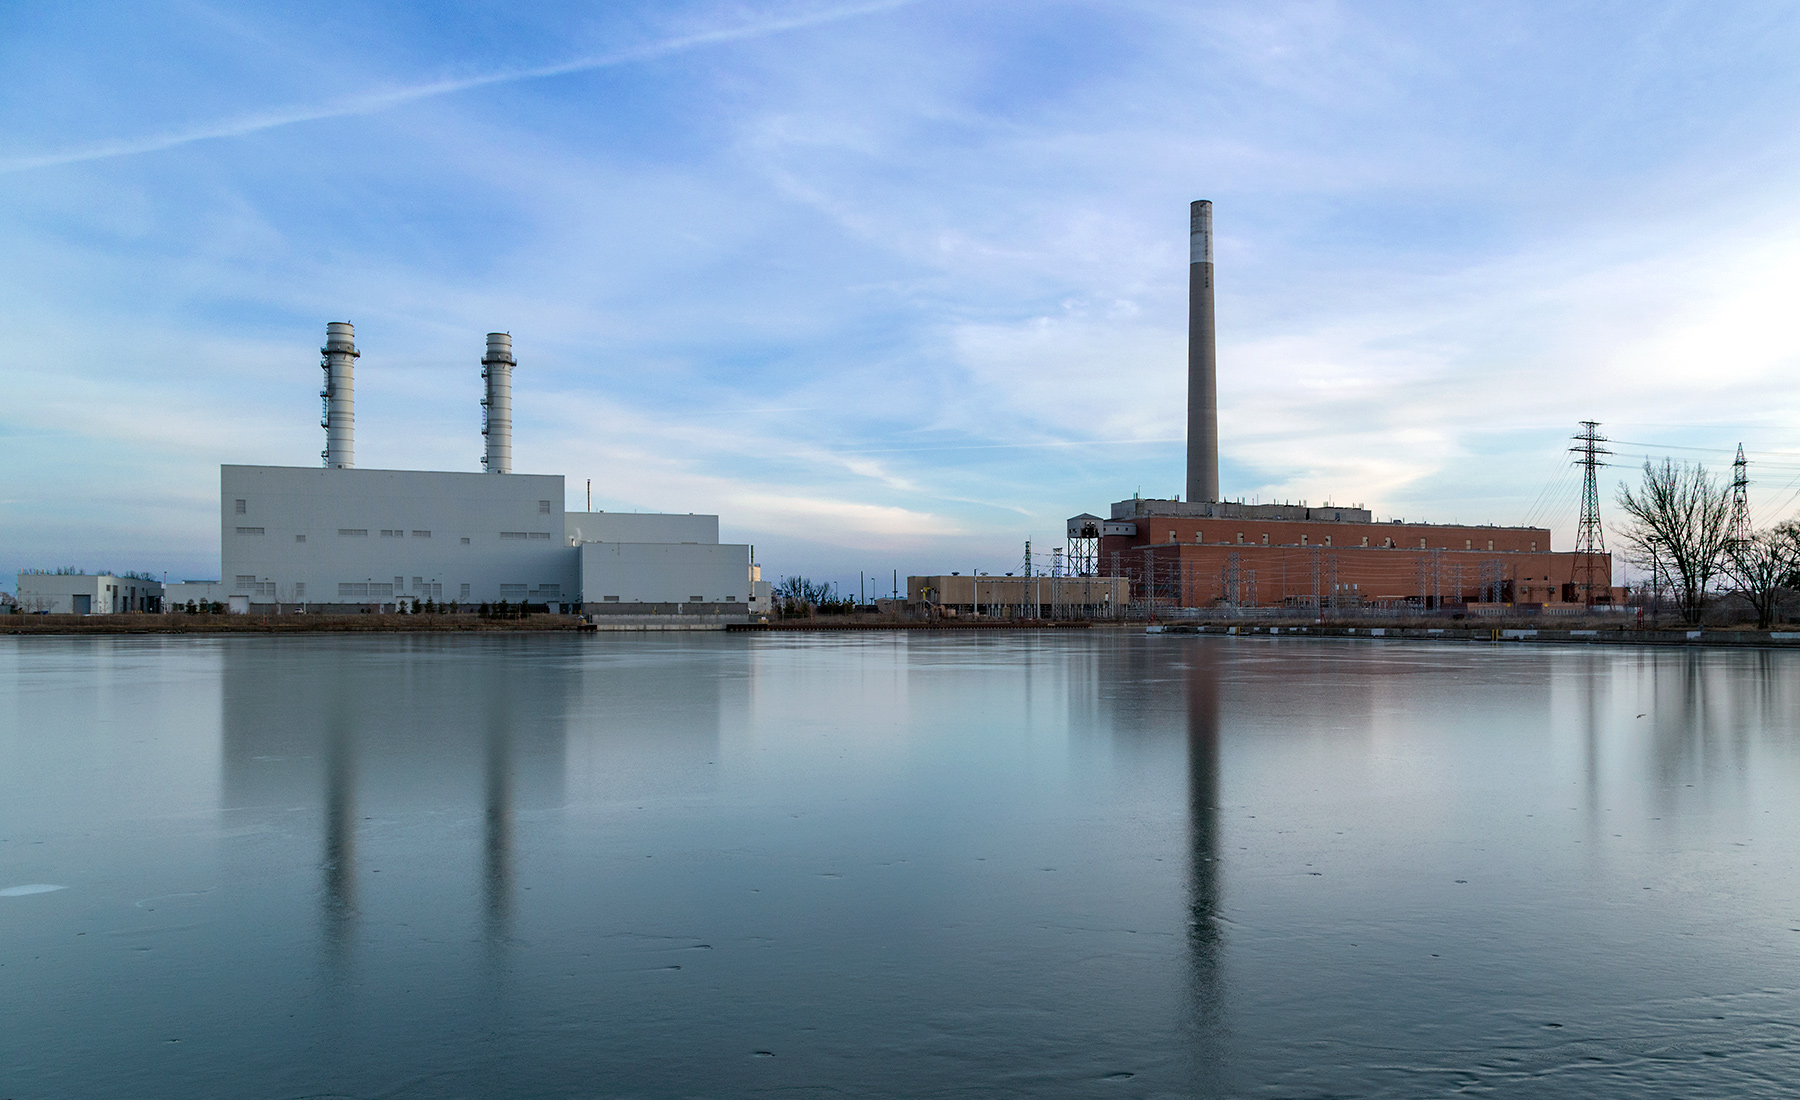 20160226. A reflection of two generations of power plants in the